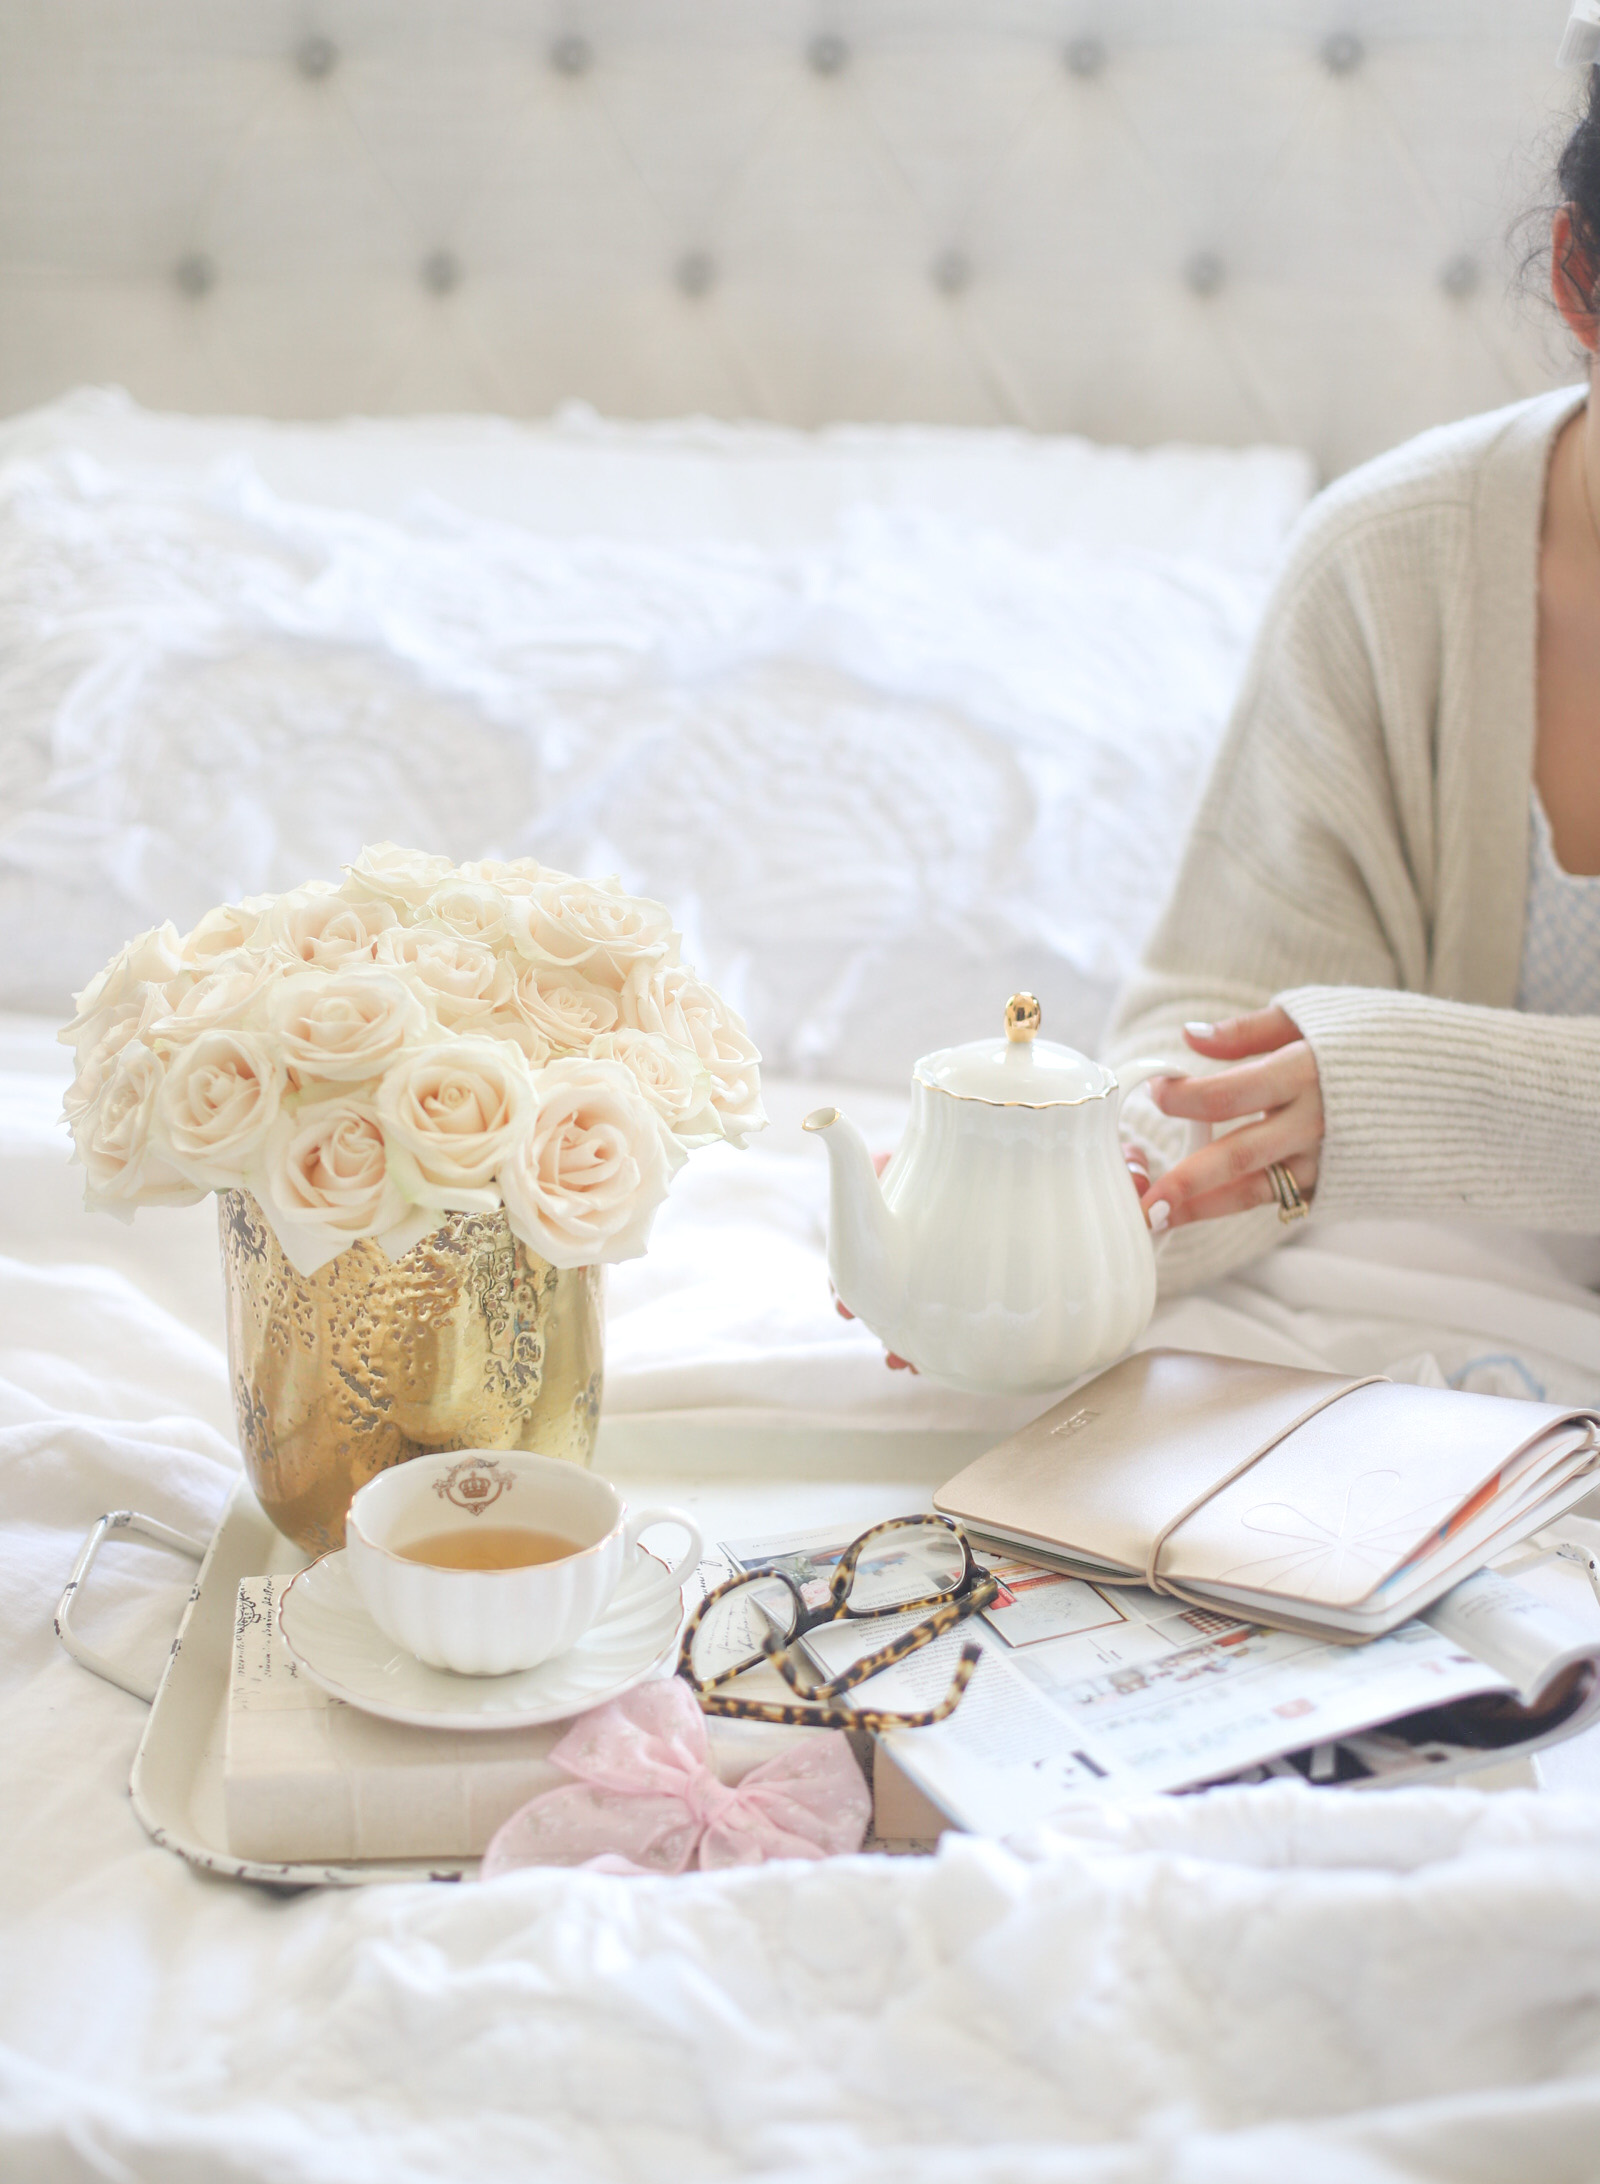 Little Loves Notes, Weekend Pampering, Roses and Tea - GLITTERINC.COM